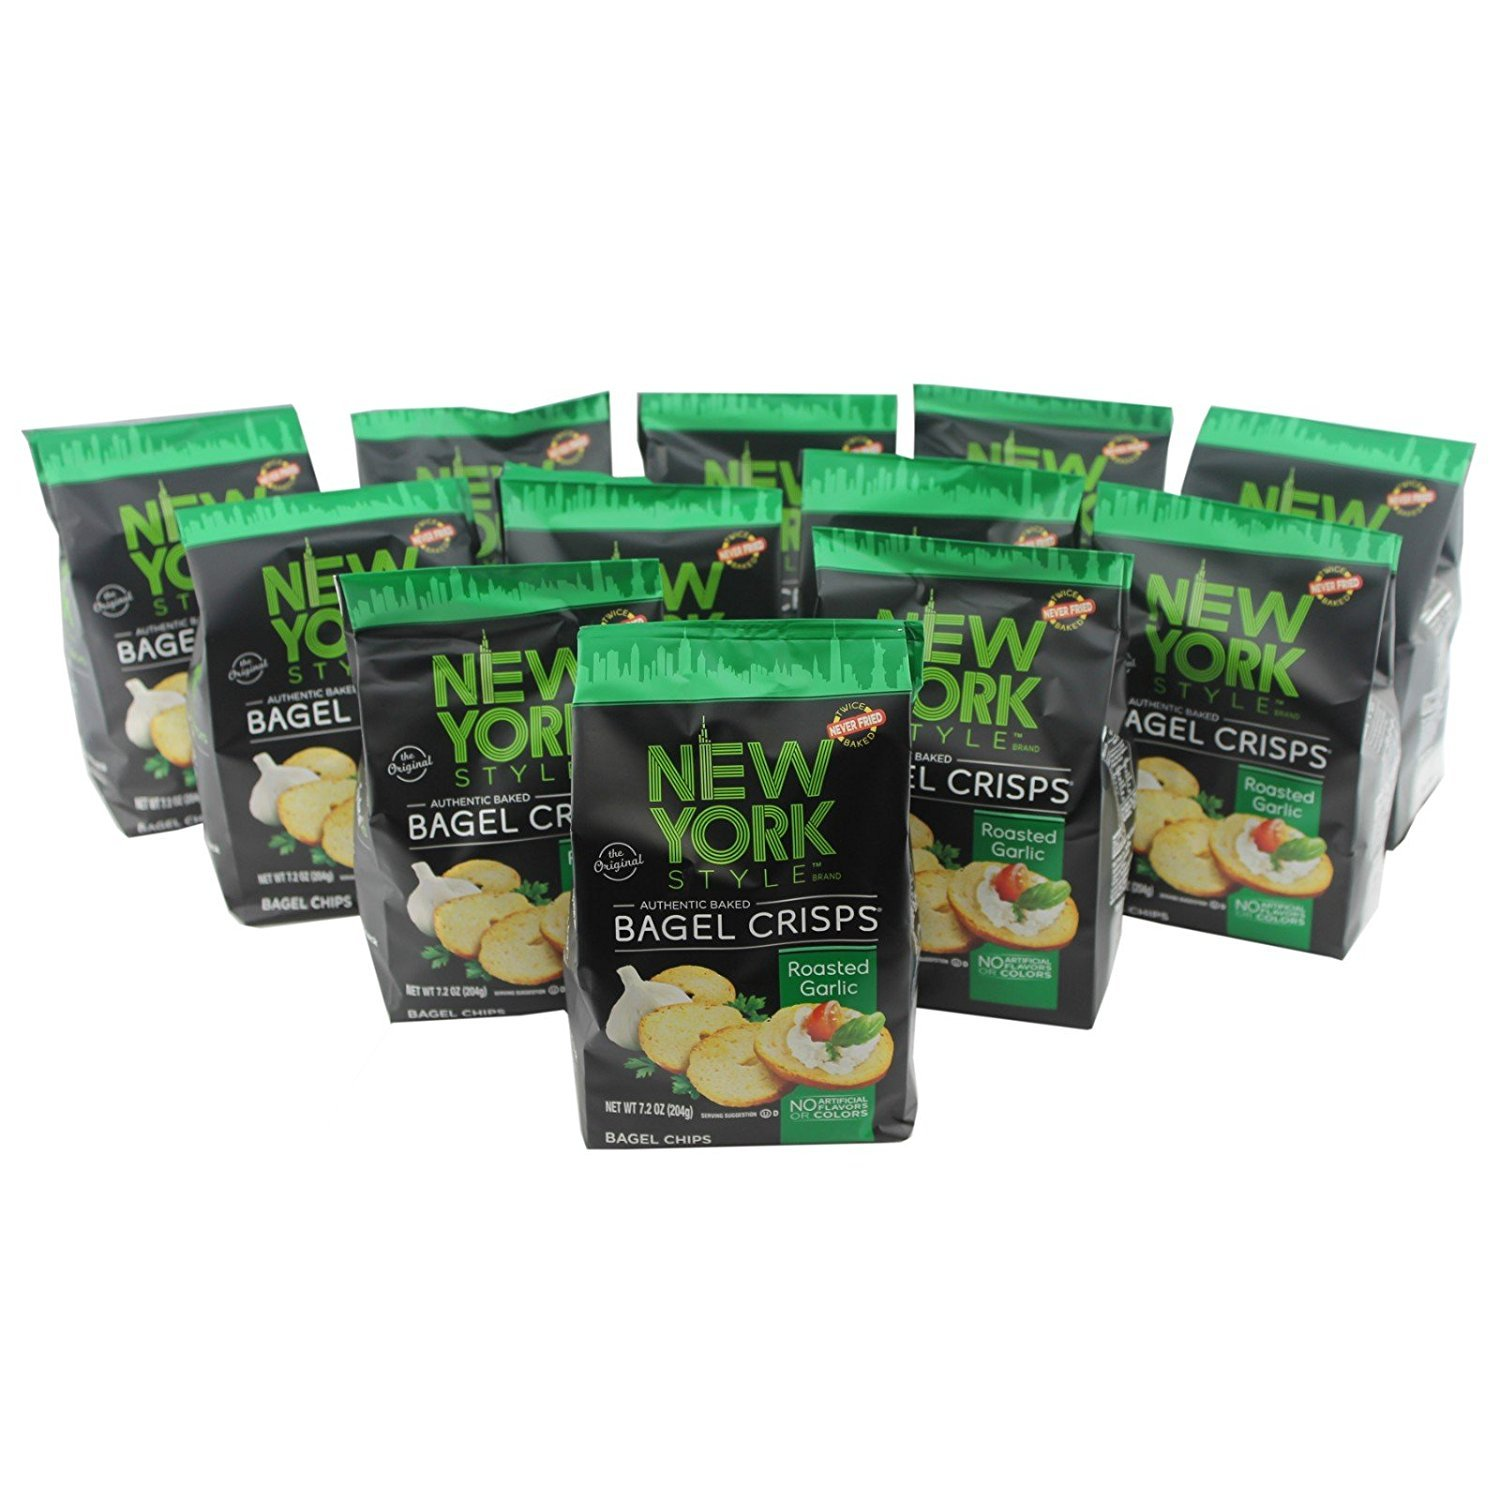 New York Style Bagel Crisps, Garlic, 7.2 Ounce (Pack of 12) Prime Value Inc -- Dropship